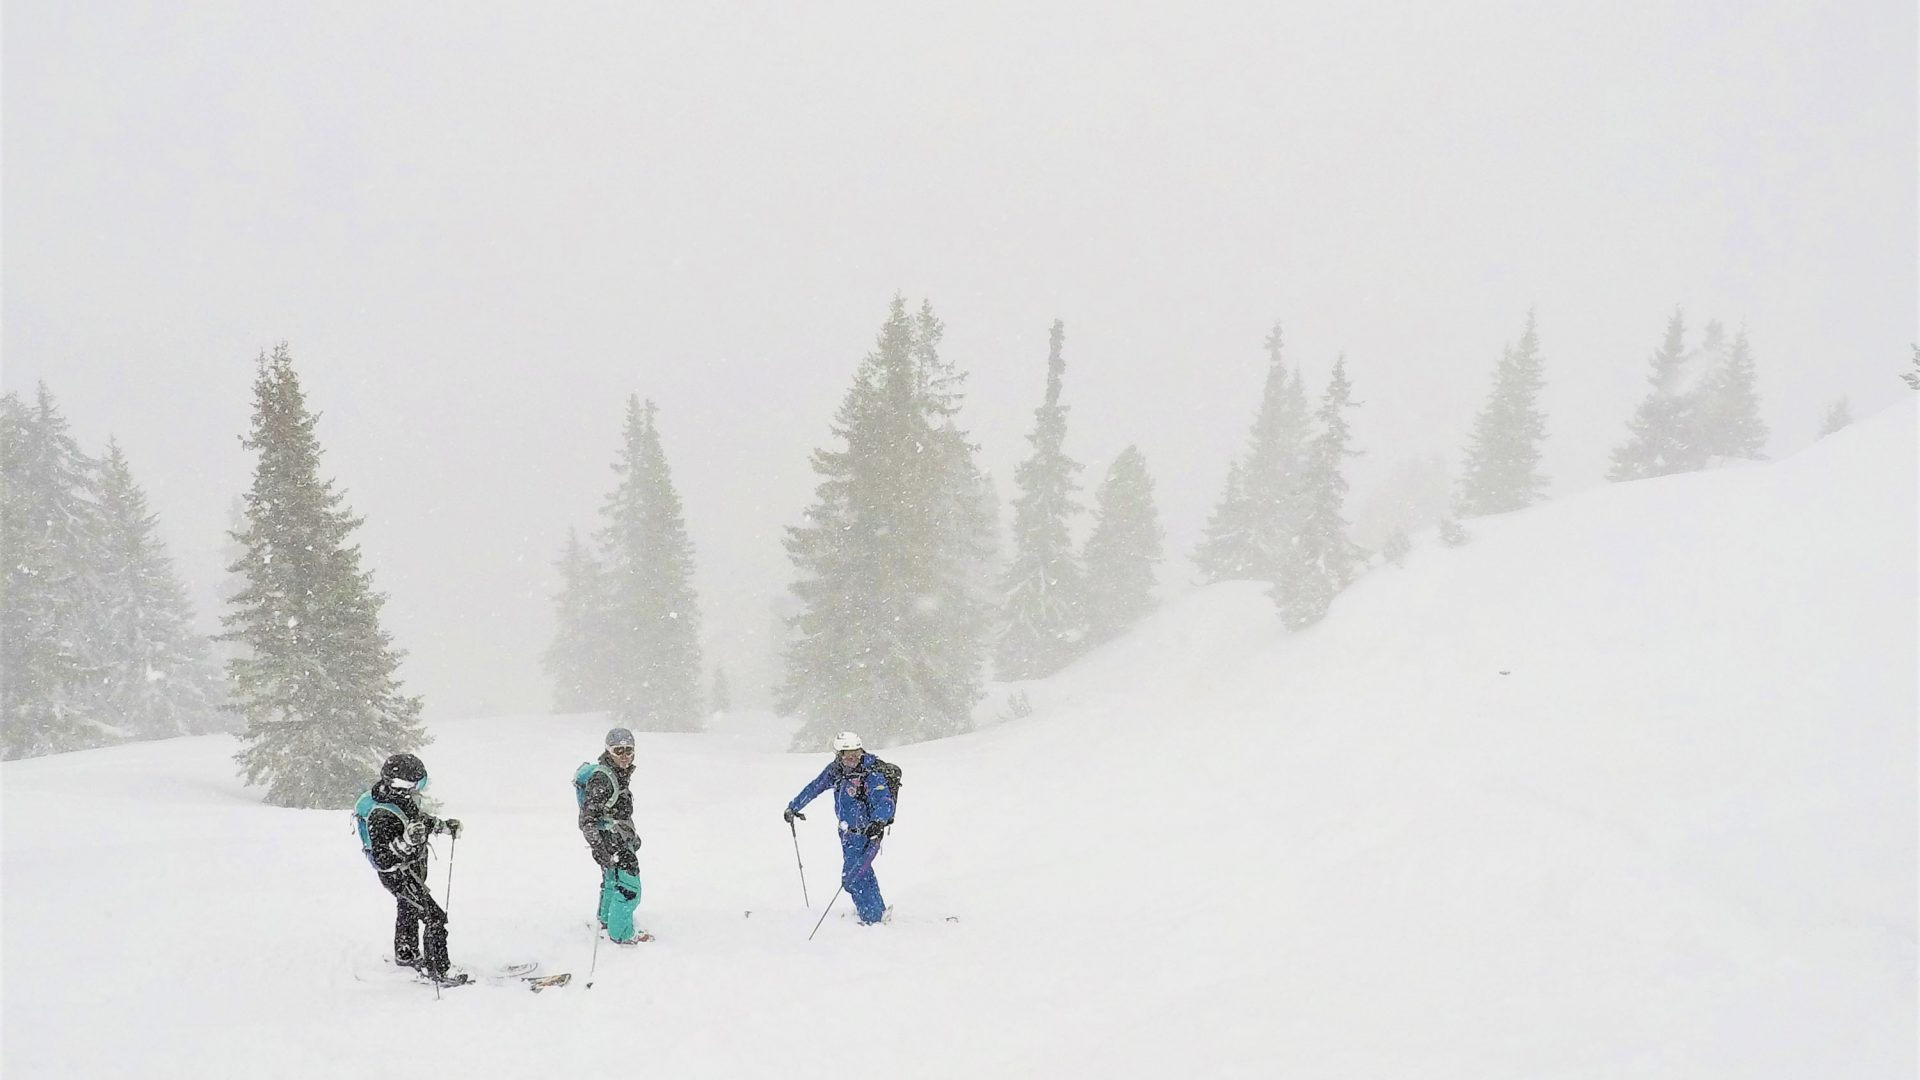 Skiers pause in a blizzard at St. Anton am Arlberg, Austria.